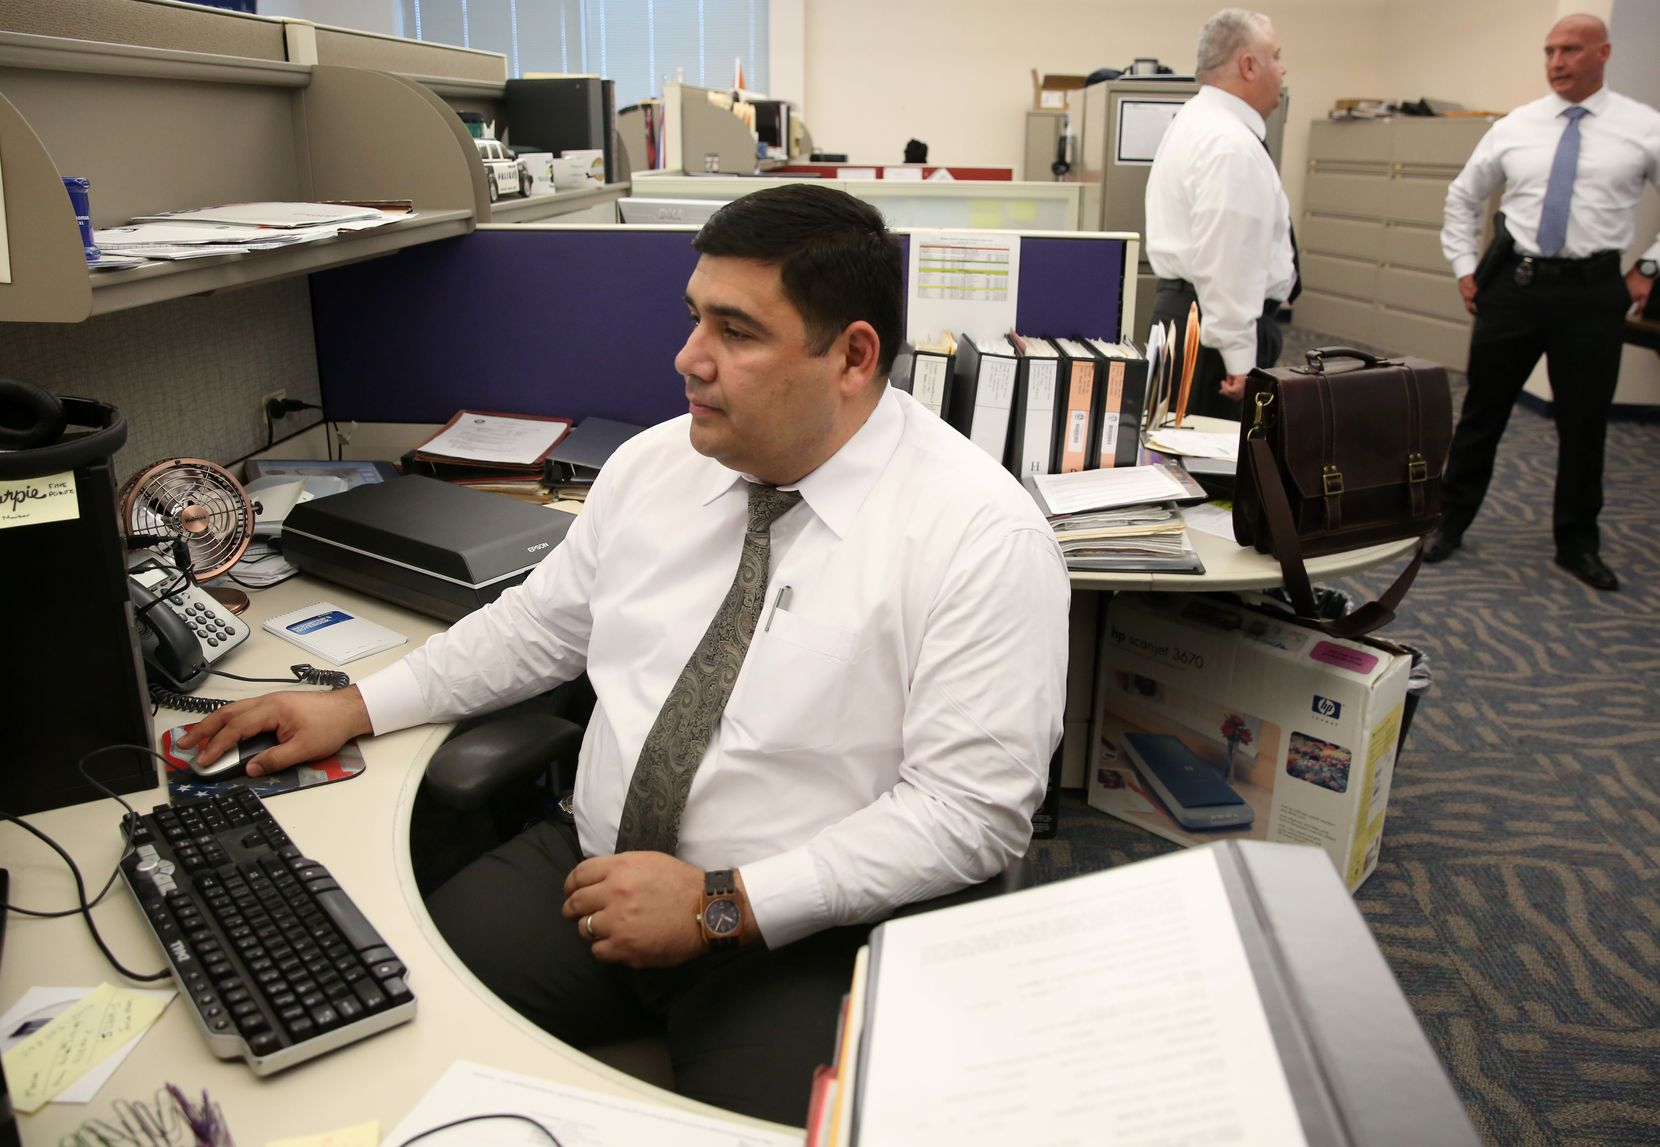 Detective Noe Camacho, a member of the cold case unit, works at his desk at Dallas Police Department headquarters.